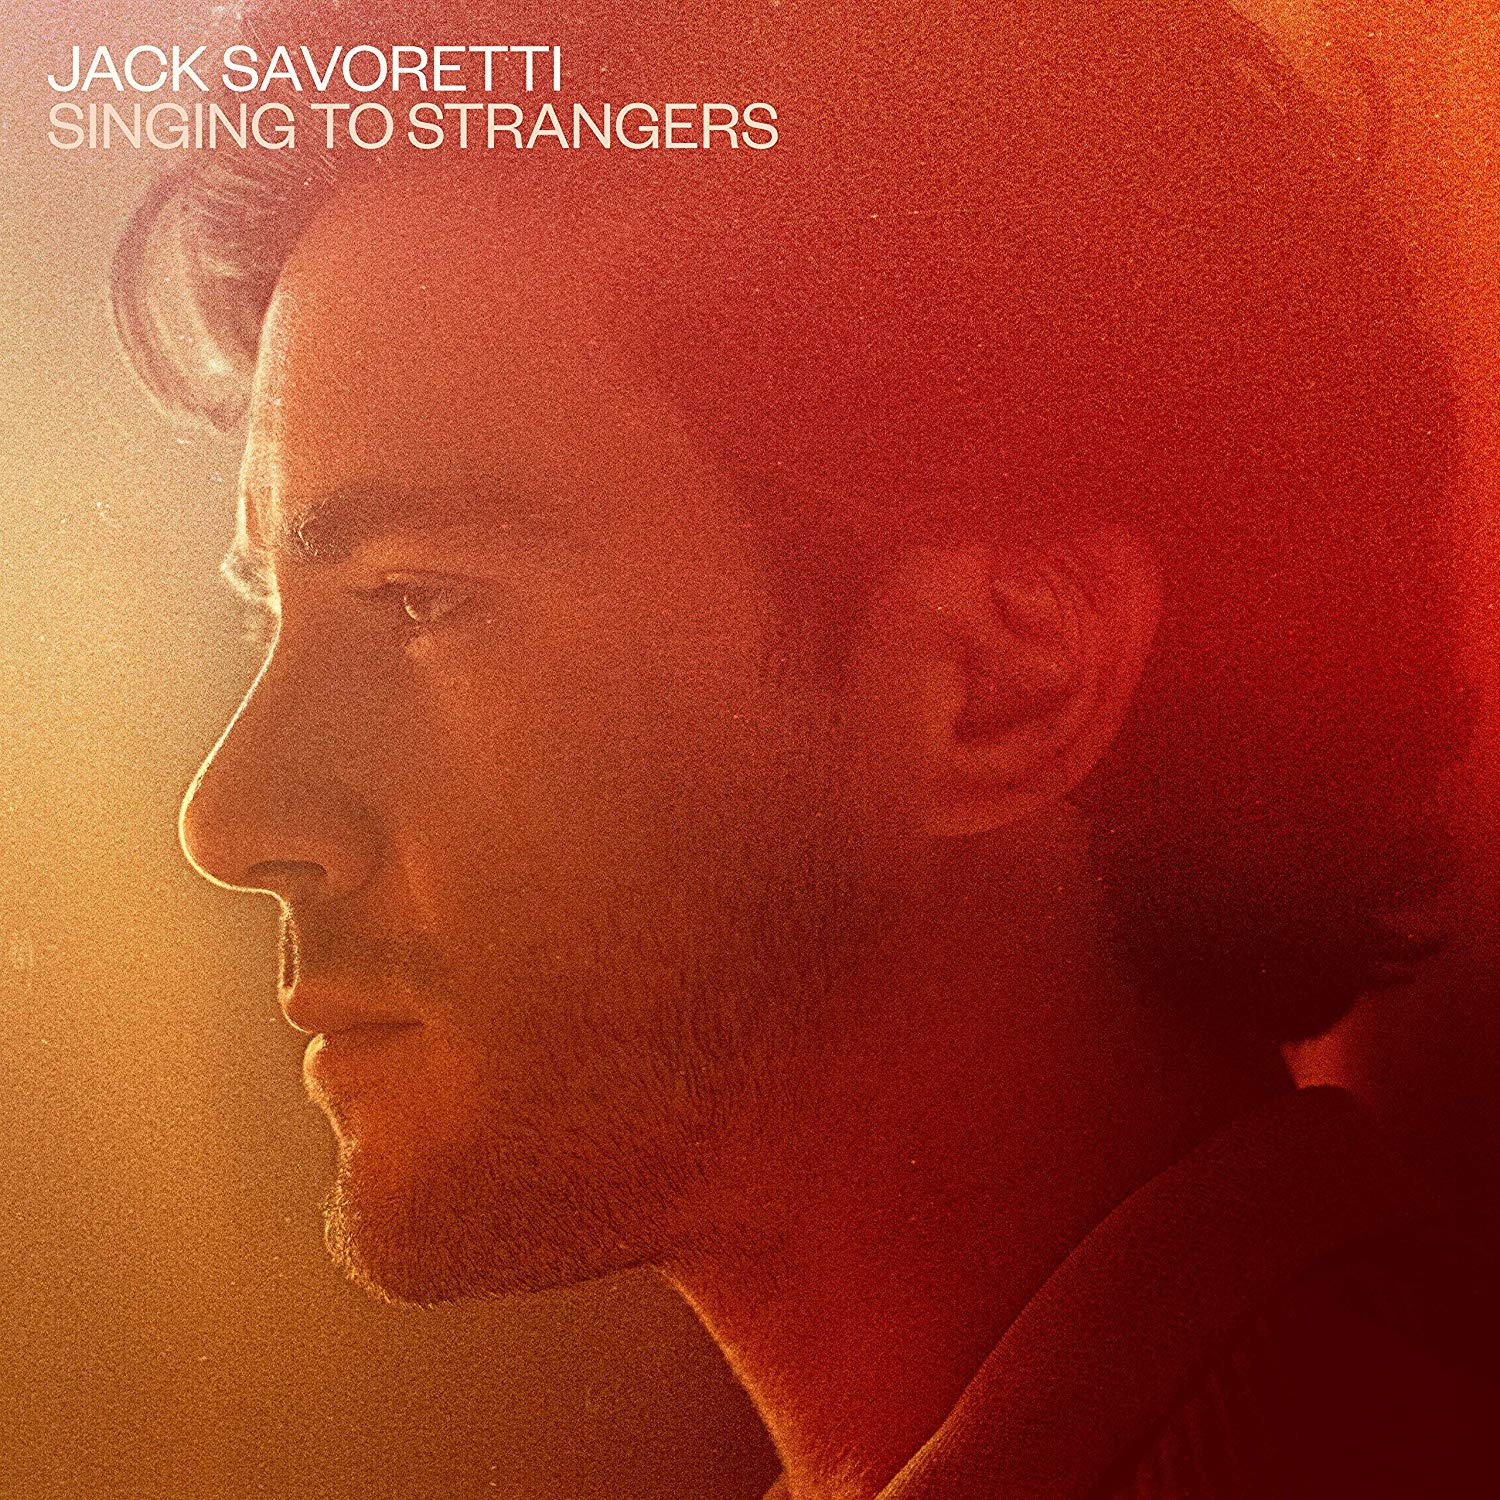 JACK SAVORETTI - SINGING TO STRANGERS (DELUXE) (LP)